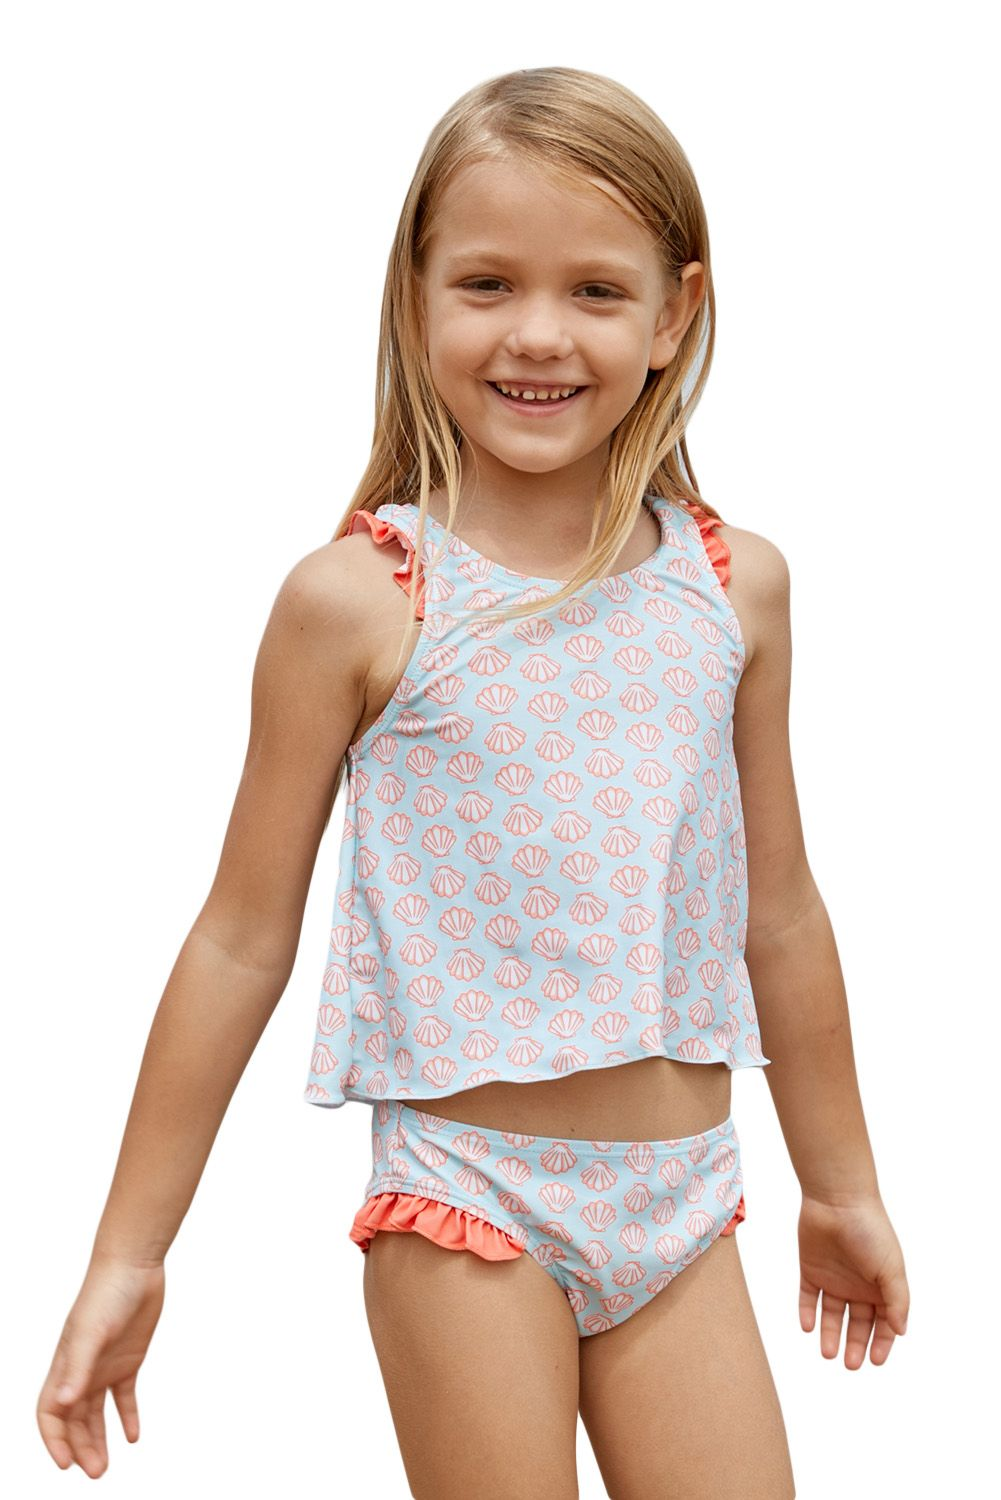 d59a71b5bec17 Light Blue Little Girls Tankini with Salmon Print | Stuff to buy ...